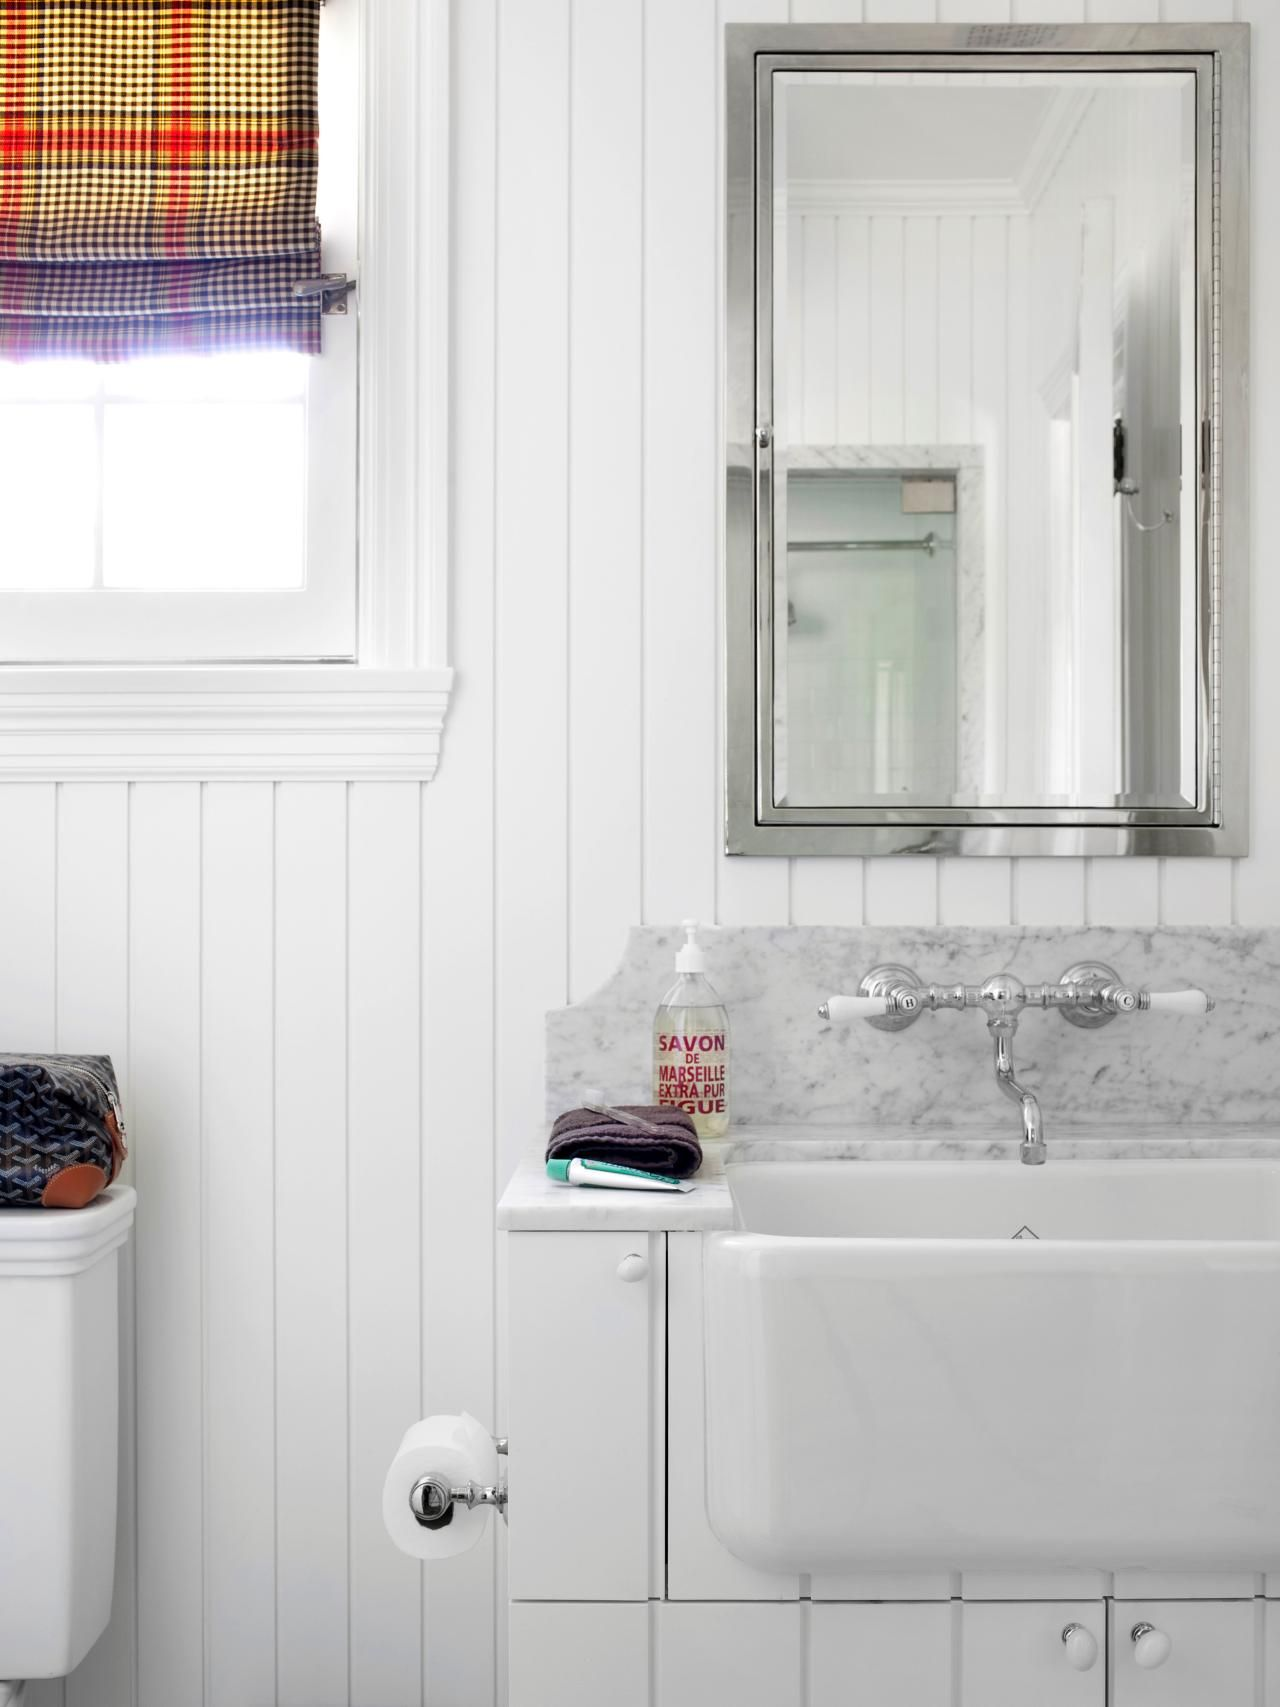 10 Big Ideas for Small Bathrooms | Will s, Small bathroom and ...